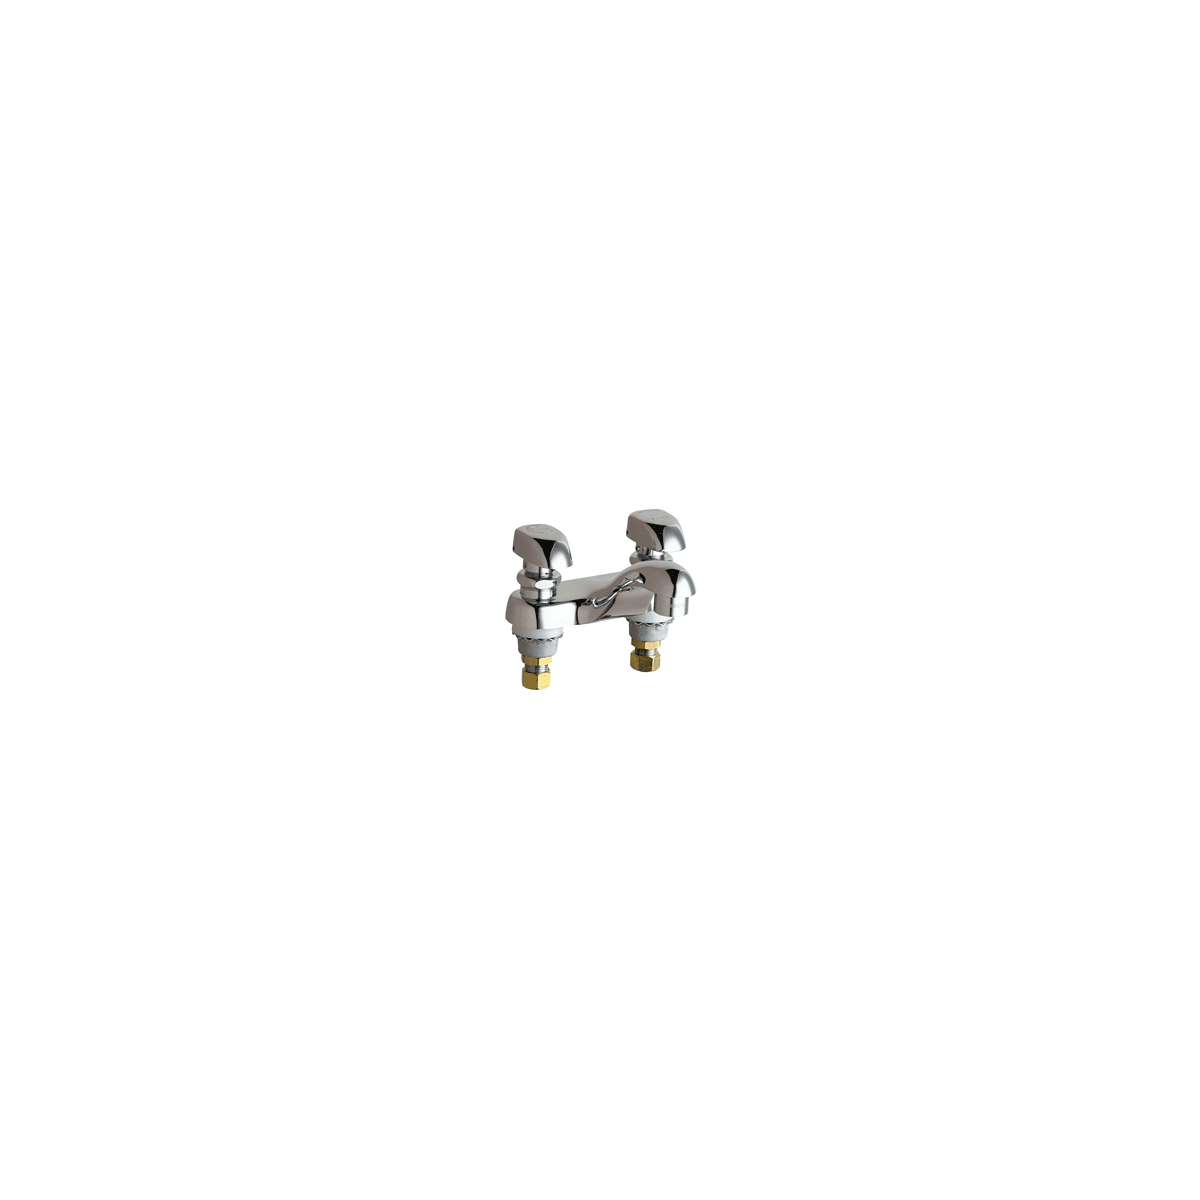 "Chicago Faucets Centerset Bathroom Faucet with 4"" Faucet Centers and Lever Handles"